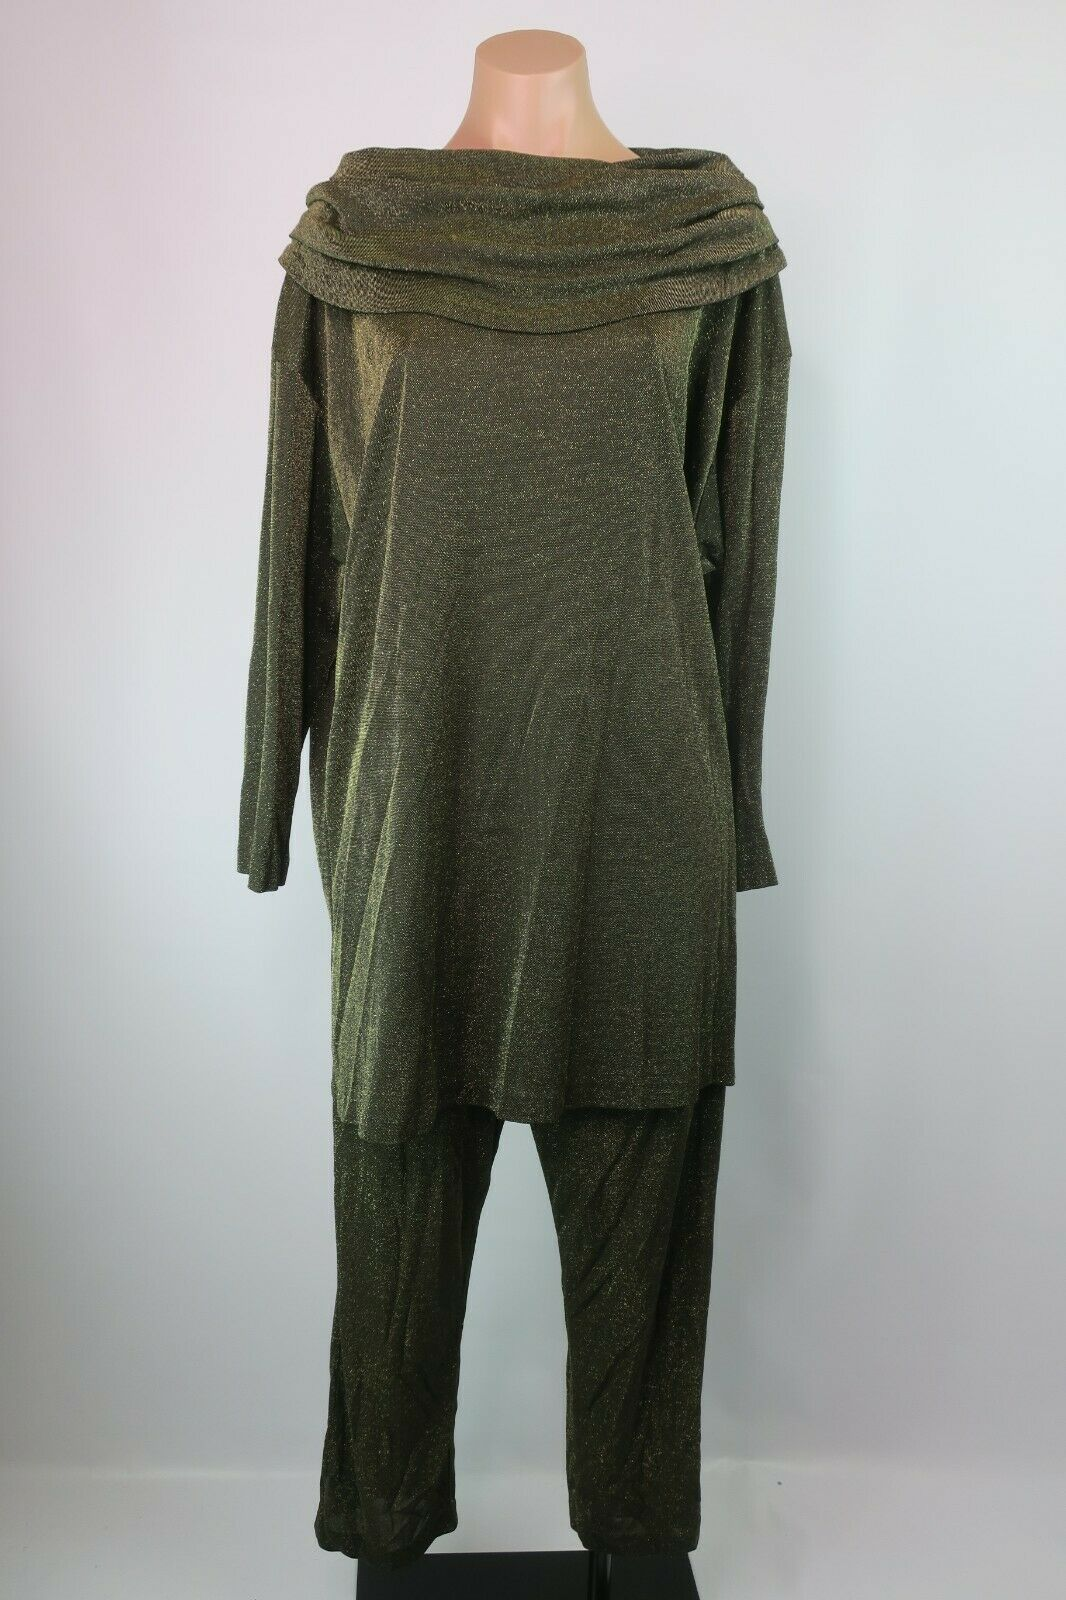 VTG 80s gold Metallic Lame Pant Suit 2Pc Loungewear Club Retro L Art-to-Wear